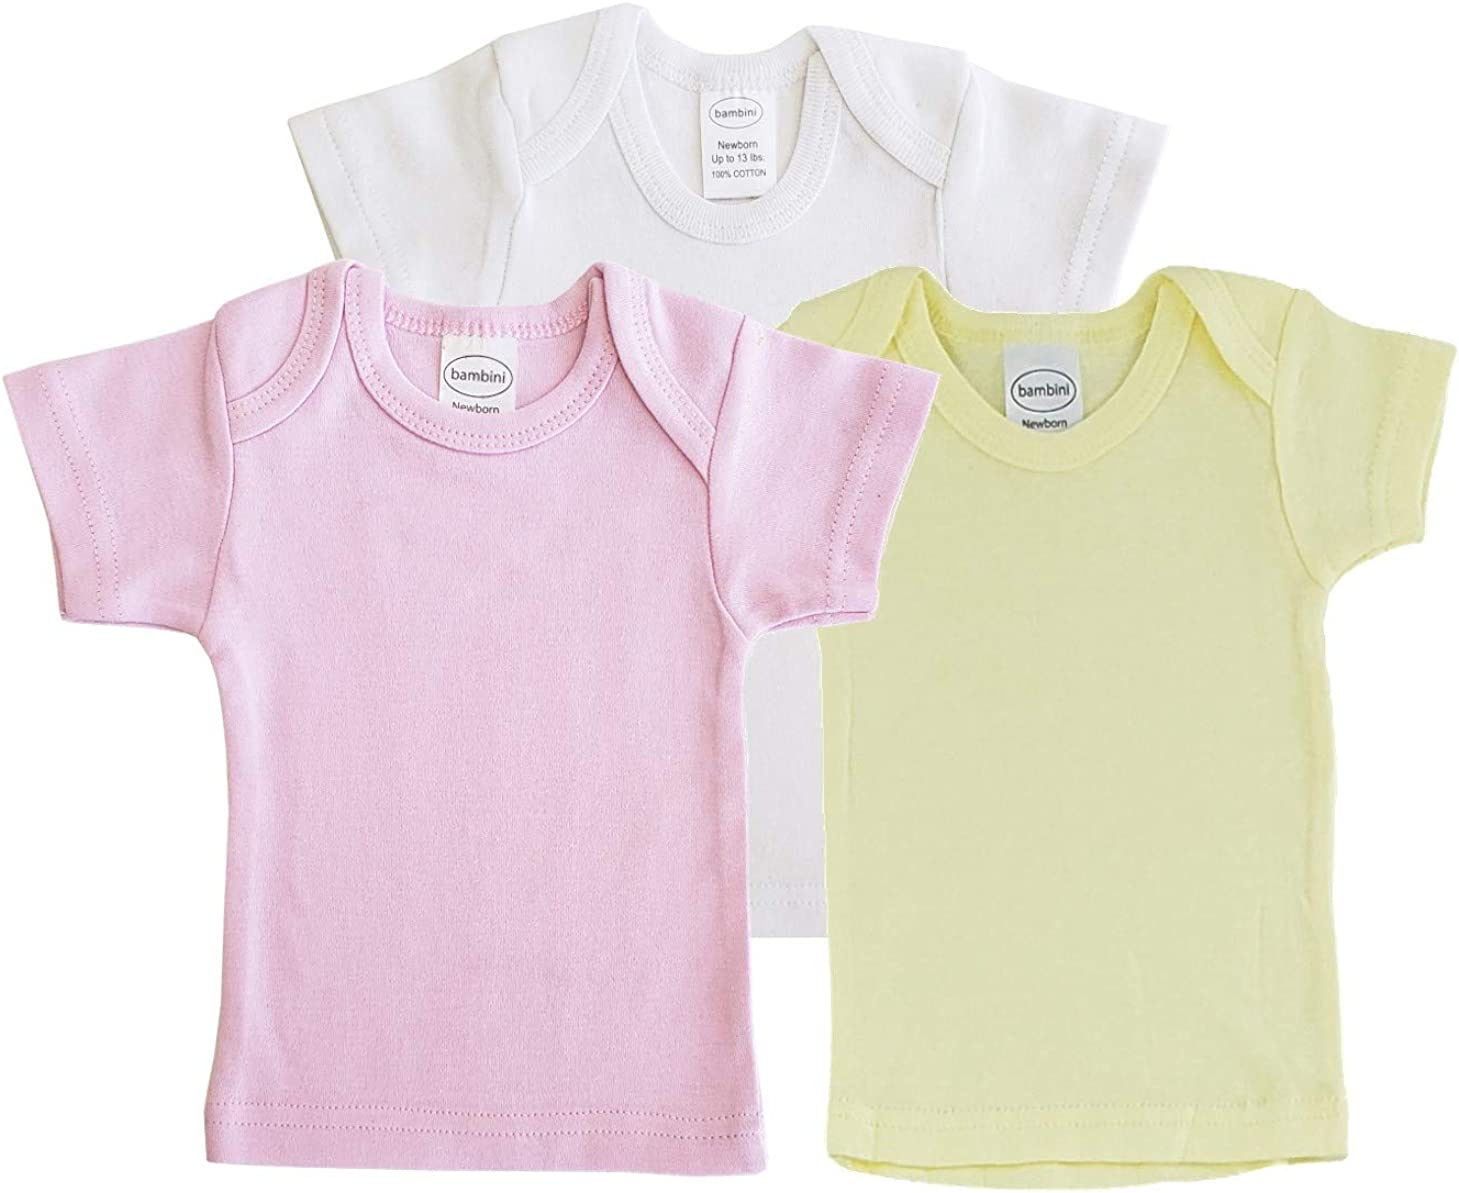 Unisex Baby Short & Long Sleeve Tee Shirts, 100% Cotton for Variety Packs of 3-Pack/ 6-Pack